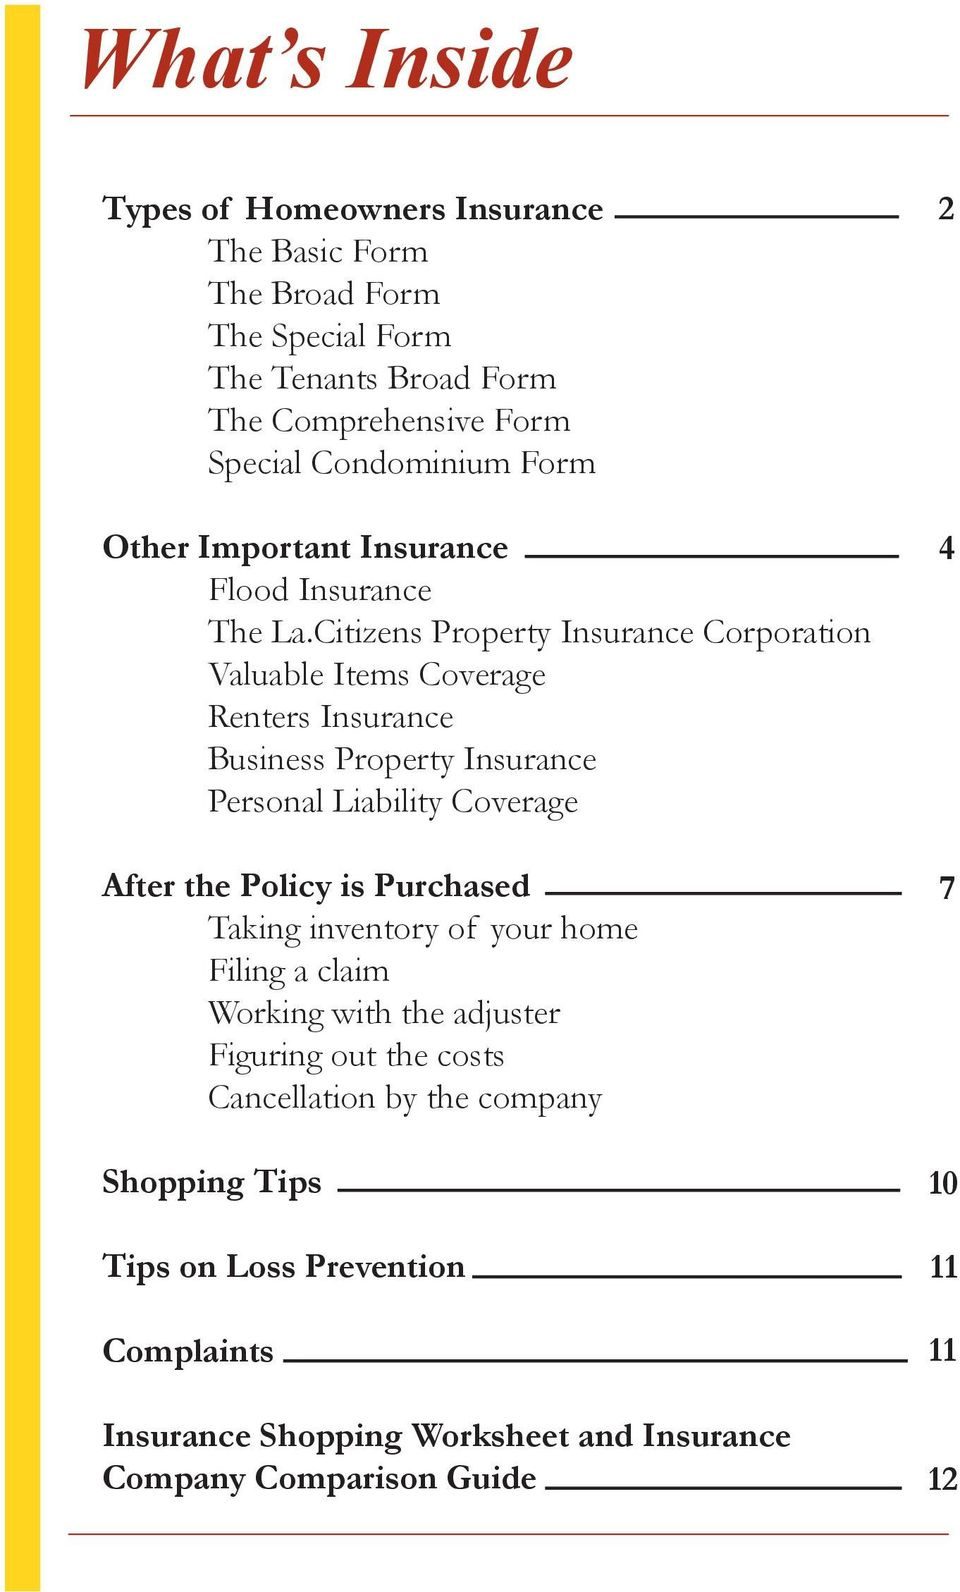 Citizens Property Insurance Corporation Valuable Items Coverage Renters Insurance Business Property Insurance Personal Liability Coverage After the Policy is